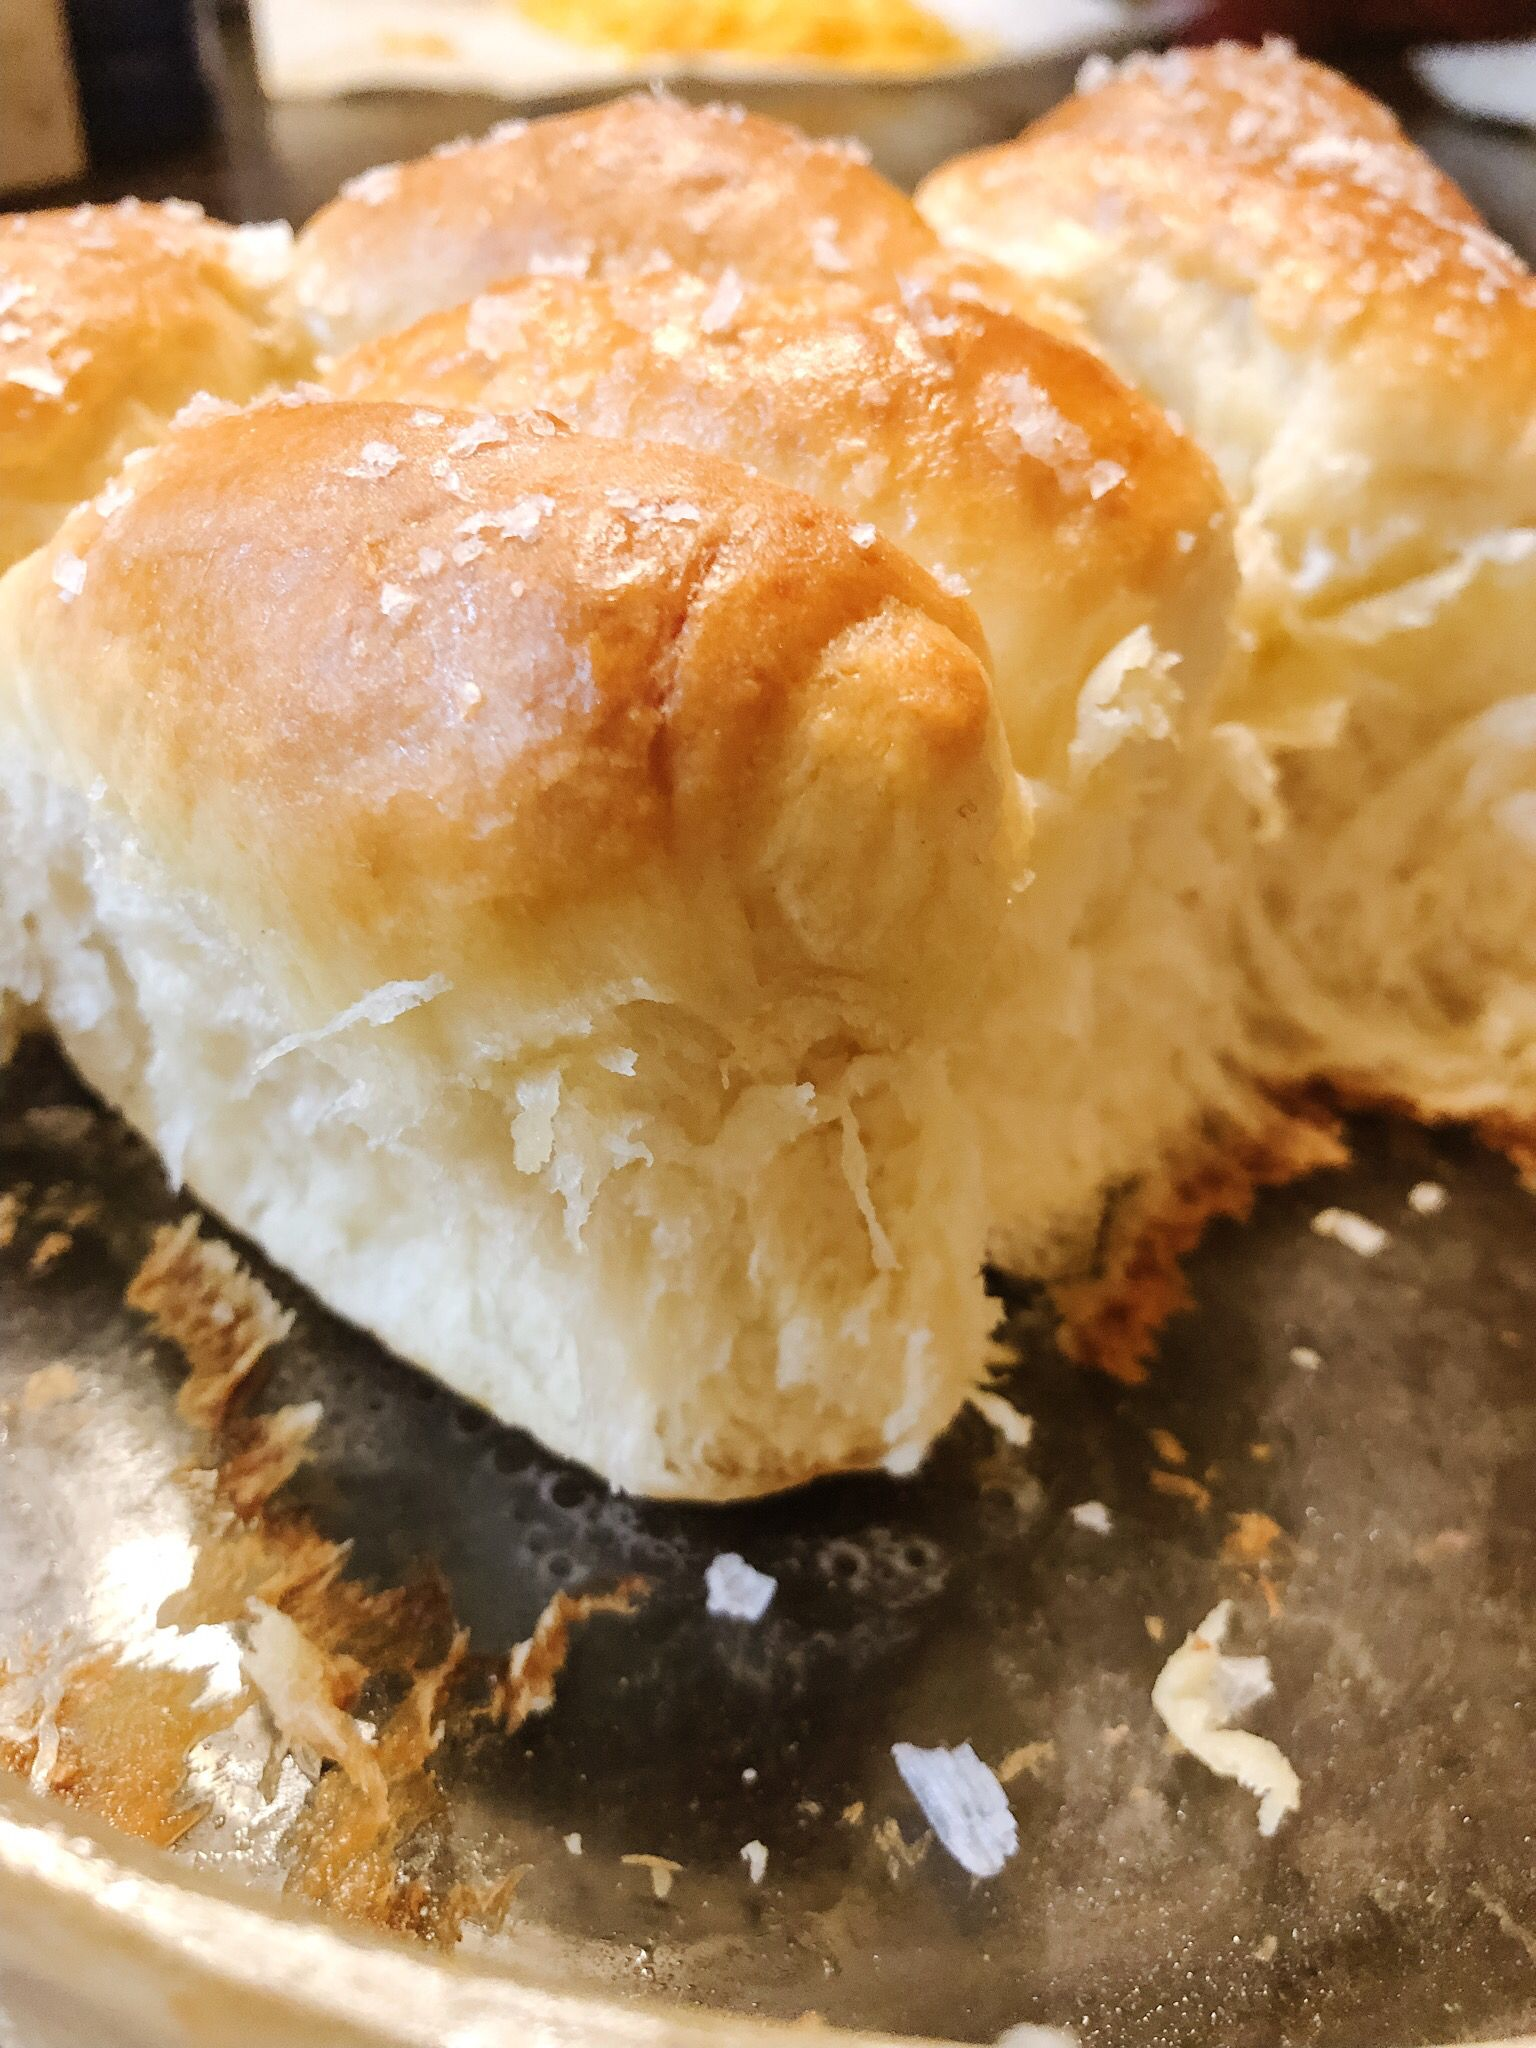 Milk Rolls With Images Yeast Rolls My Favorite Food Food